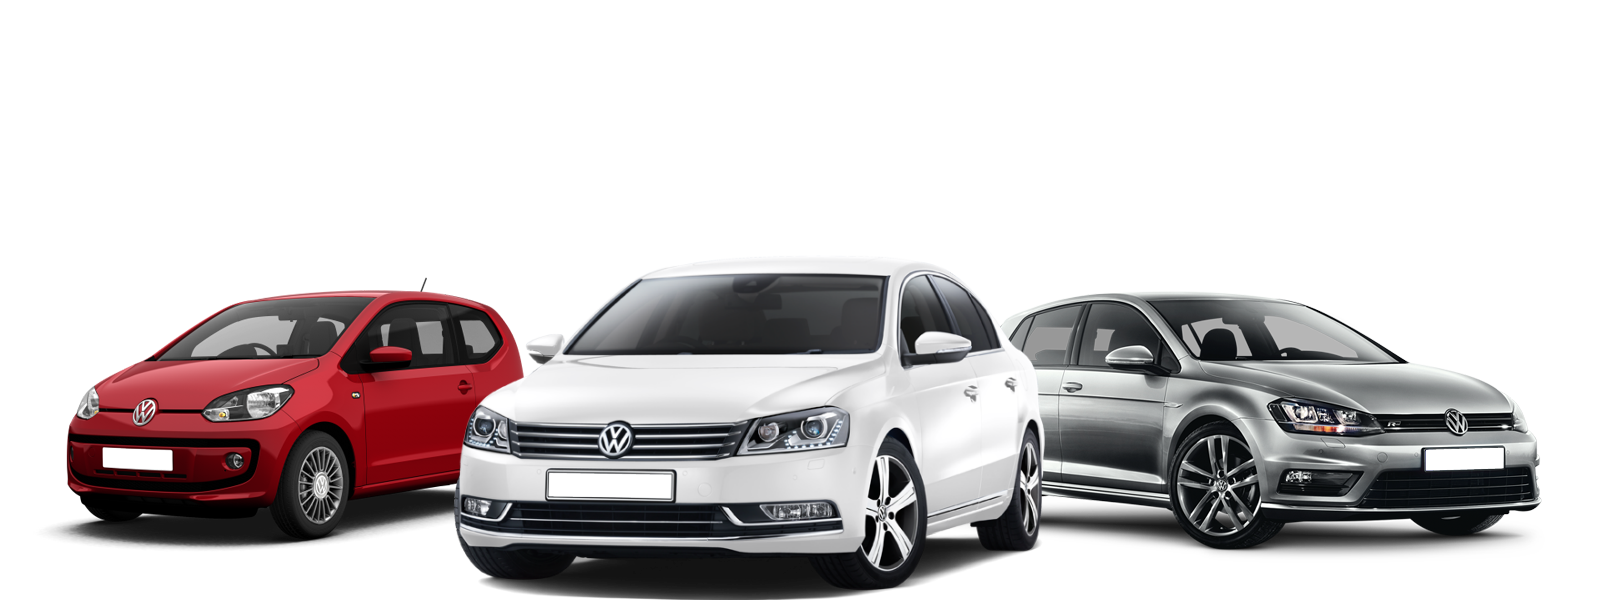 Having The Latest Car Leasing Software Can Help Car Rental Organizations To Boost Their Chances In The Tough And Compe Car Rental Service Rent A Car Car Rental